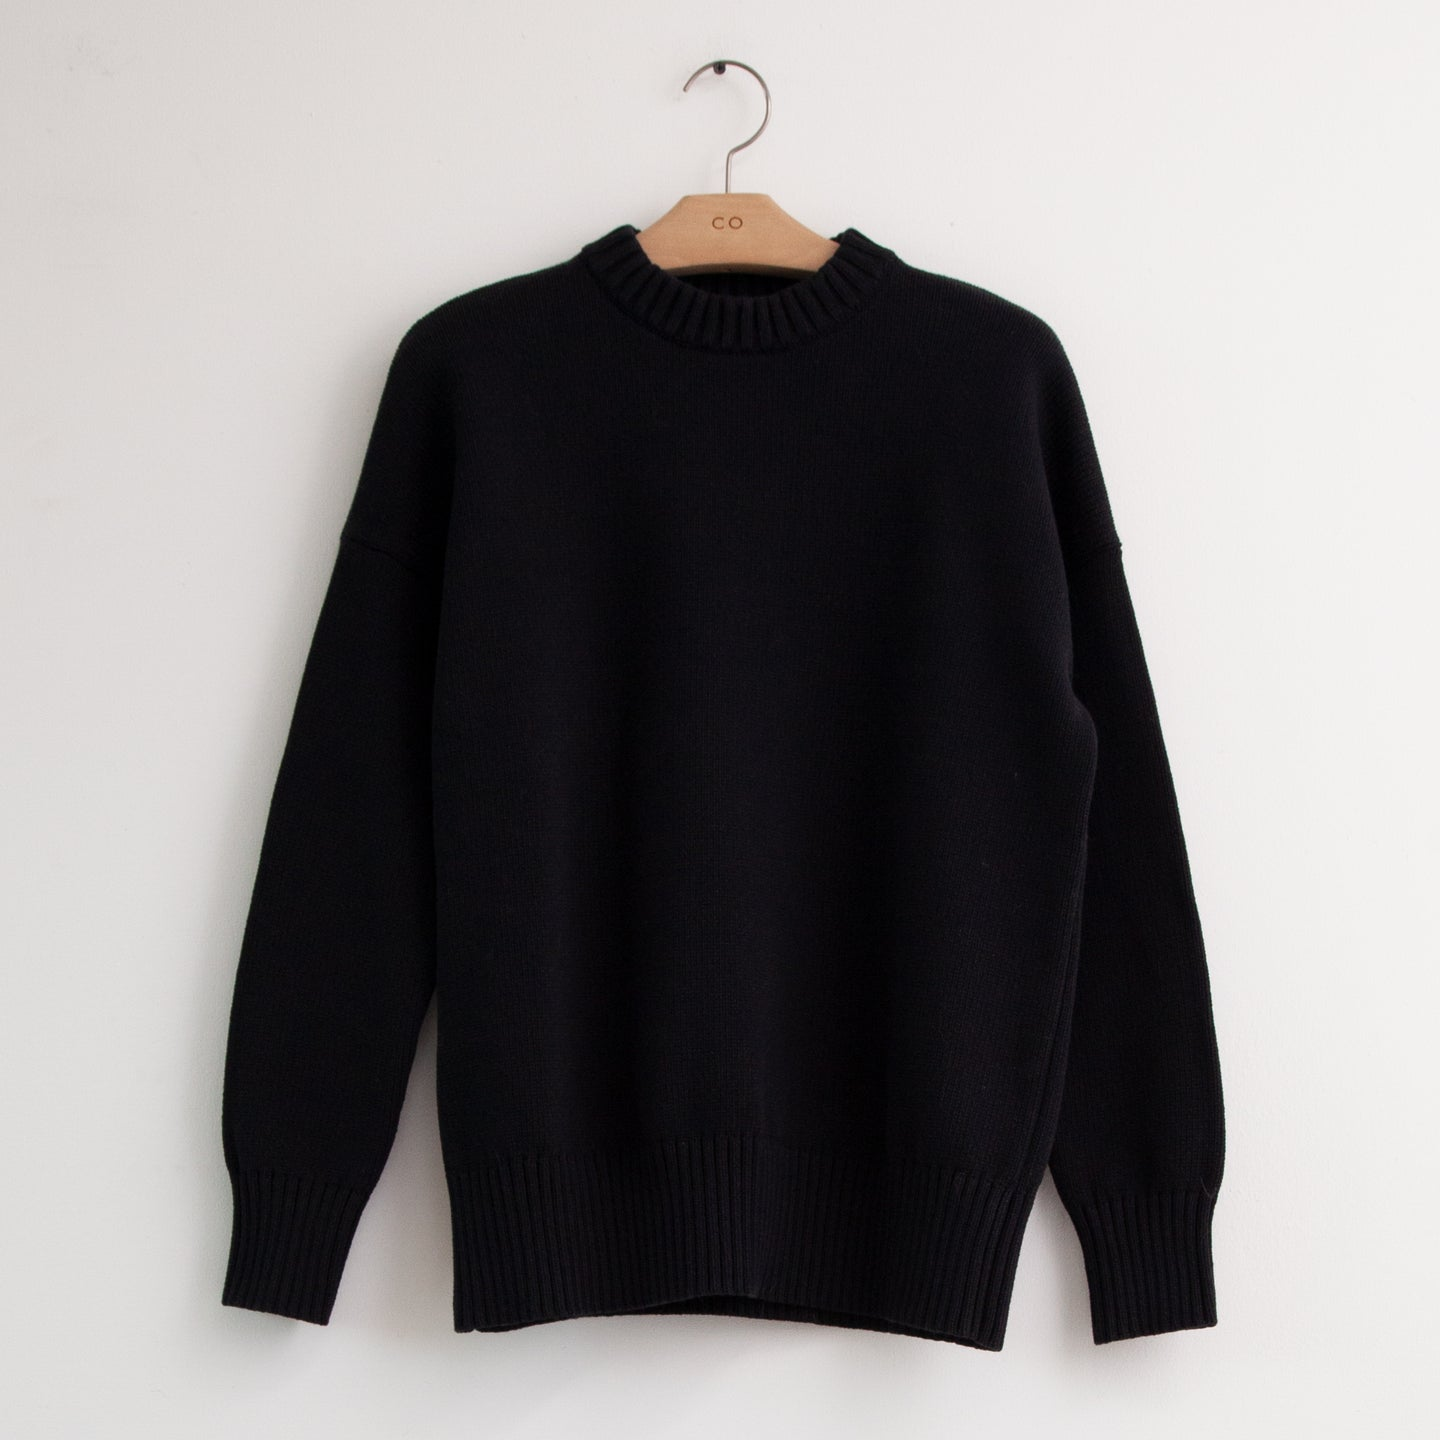 CO - Oversized pull over sweater in black cotton